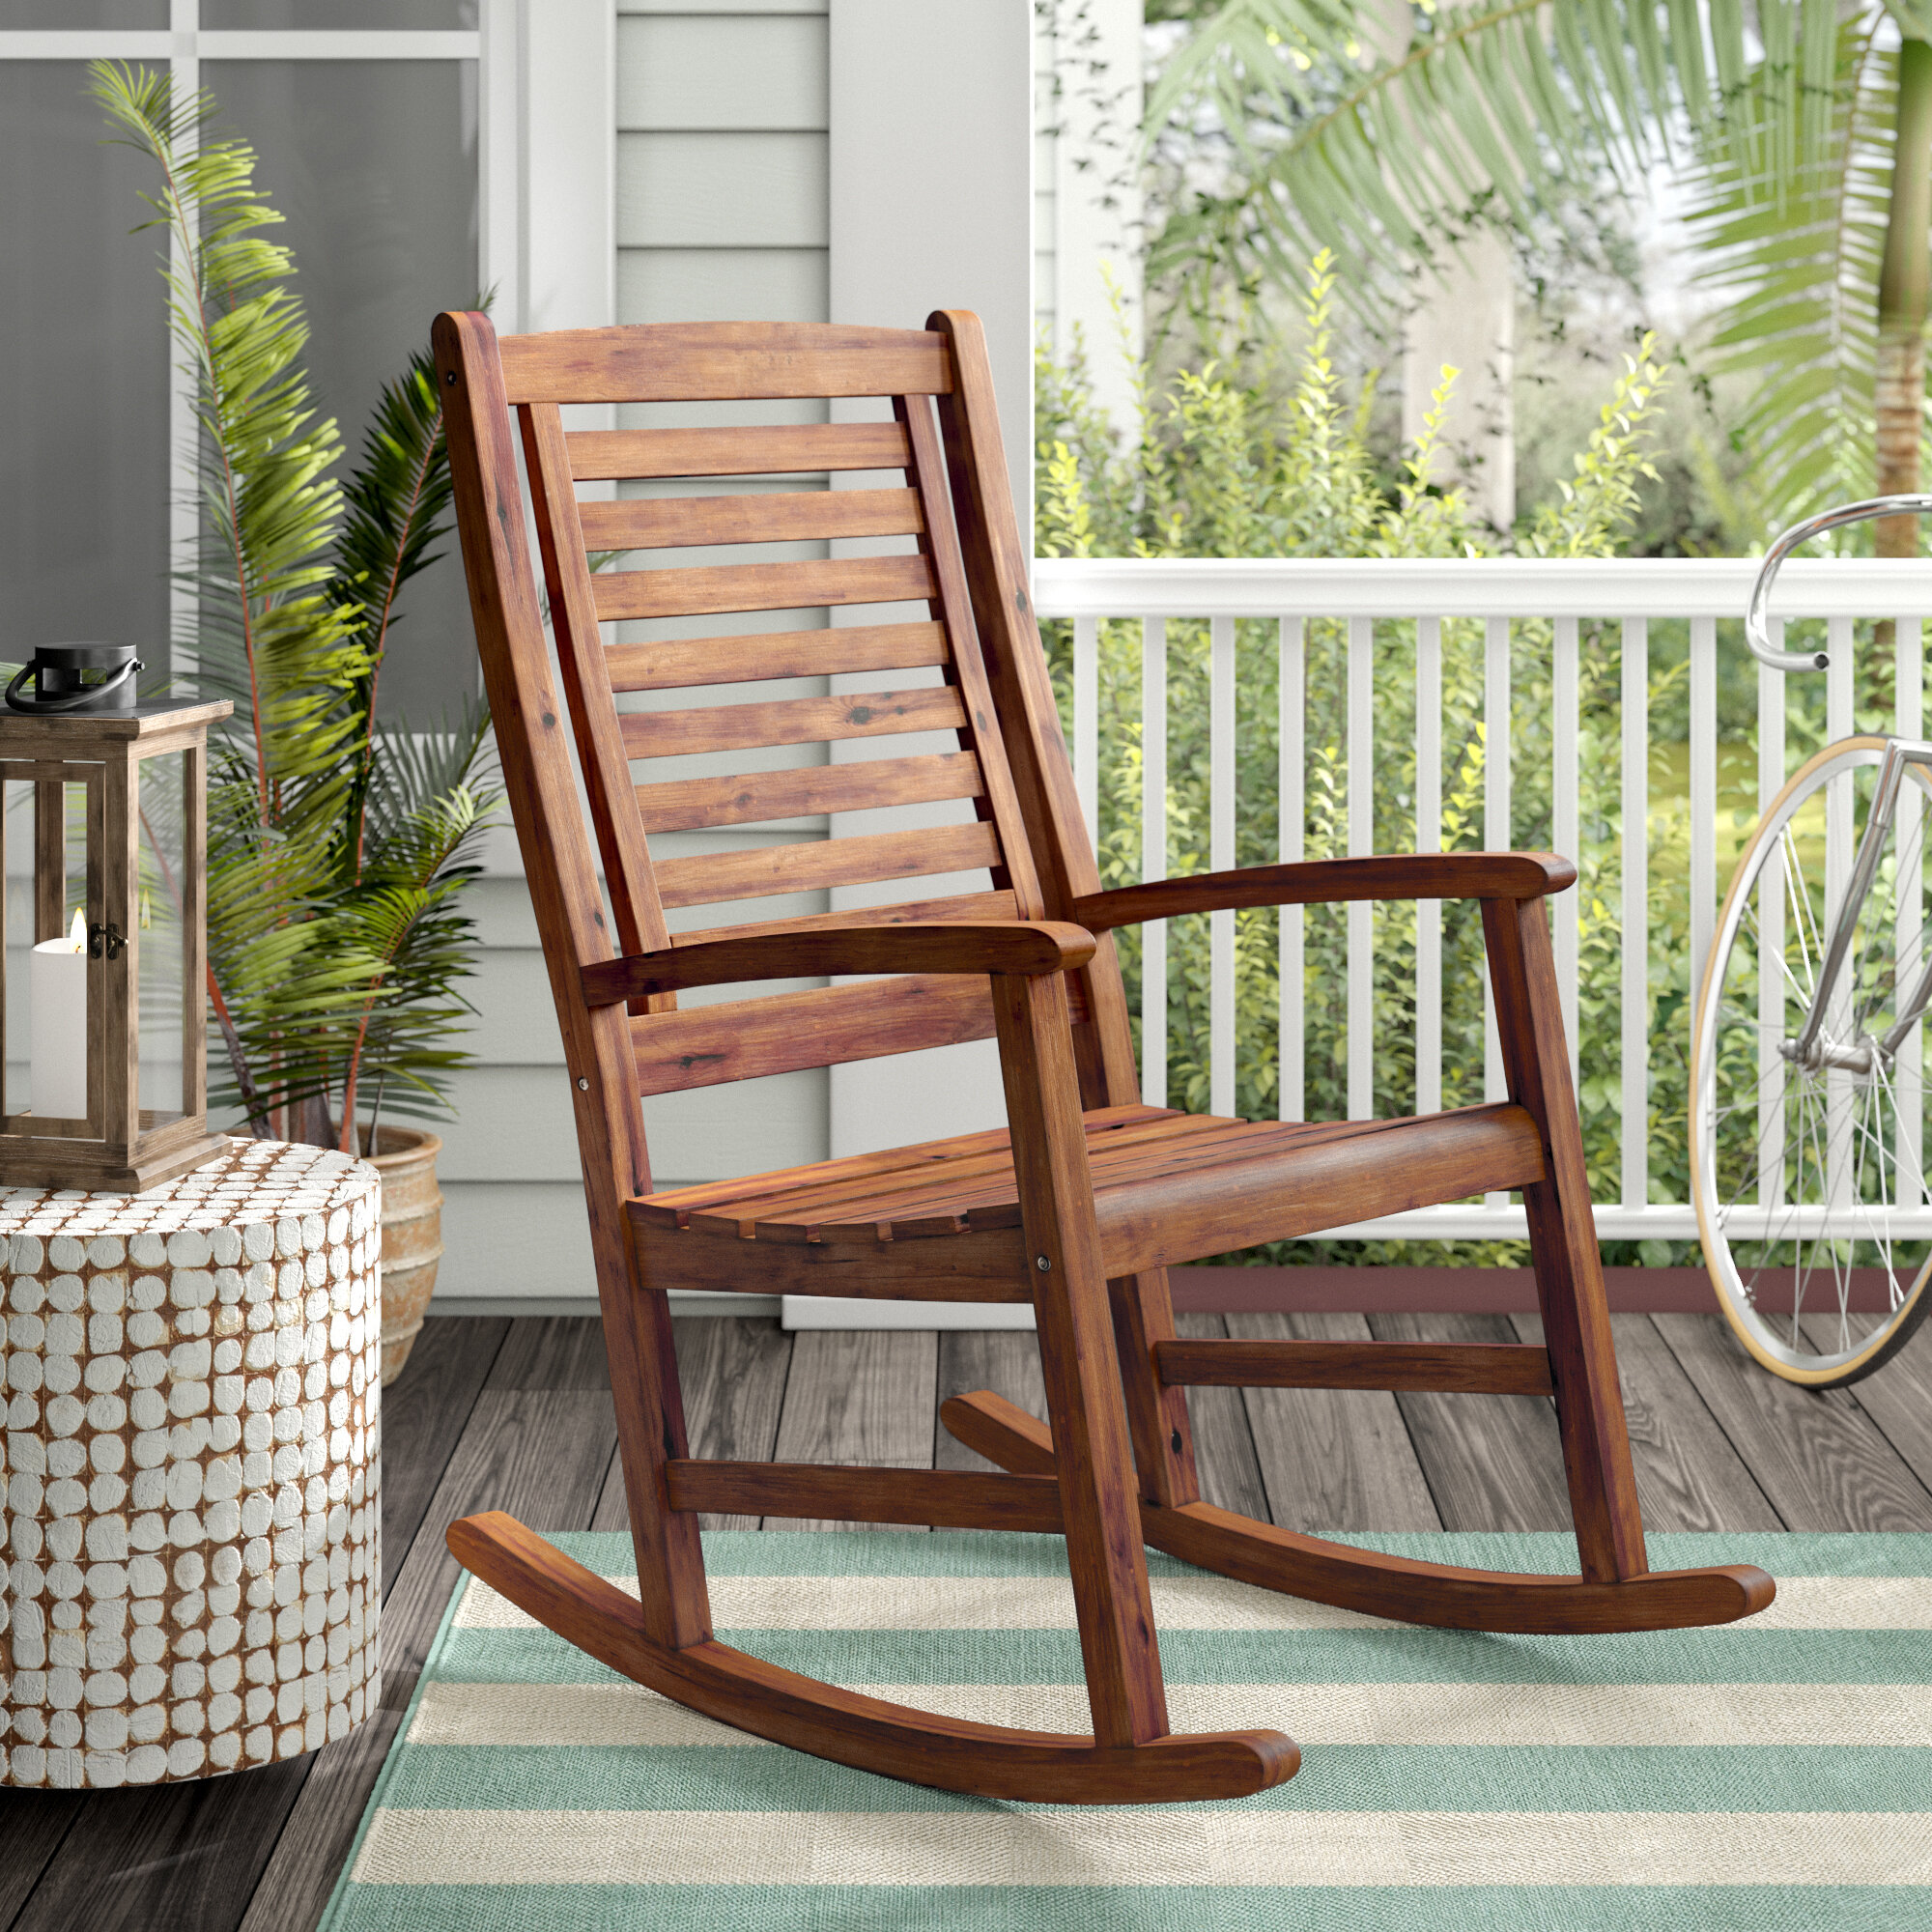 Awe Inspiring Rothstein Outdoor Rocking Chair Caraccident5 Cool Chair Designs And Ideas Caraccident5Info